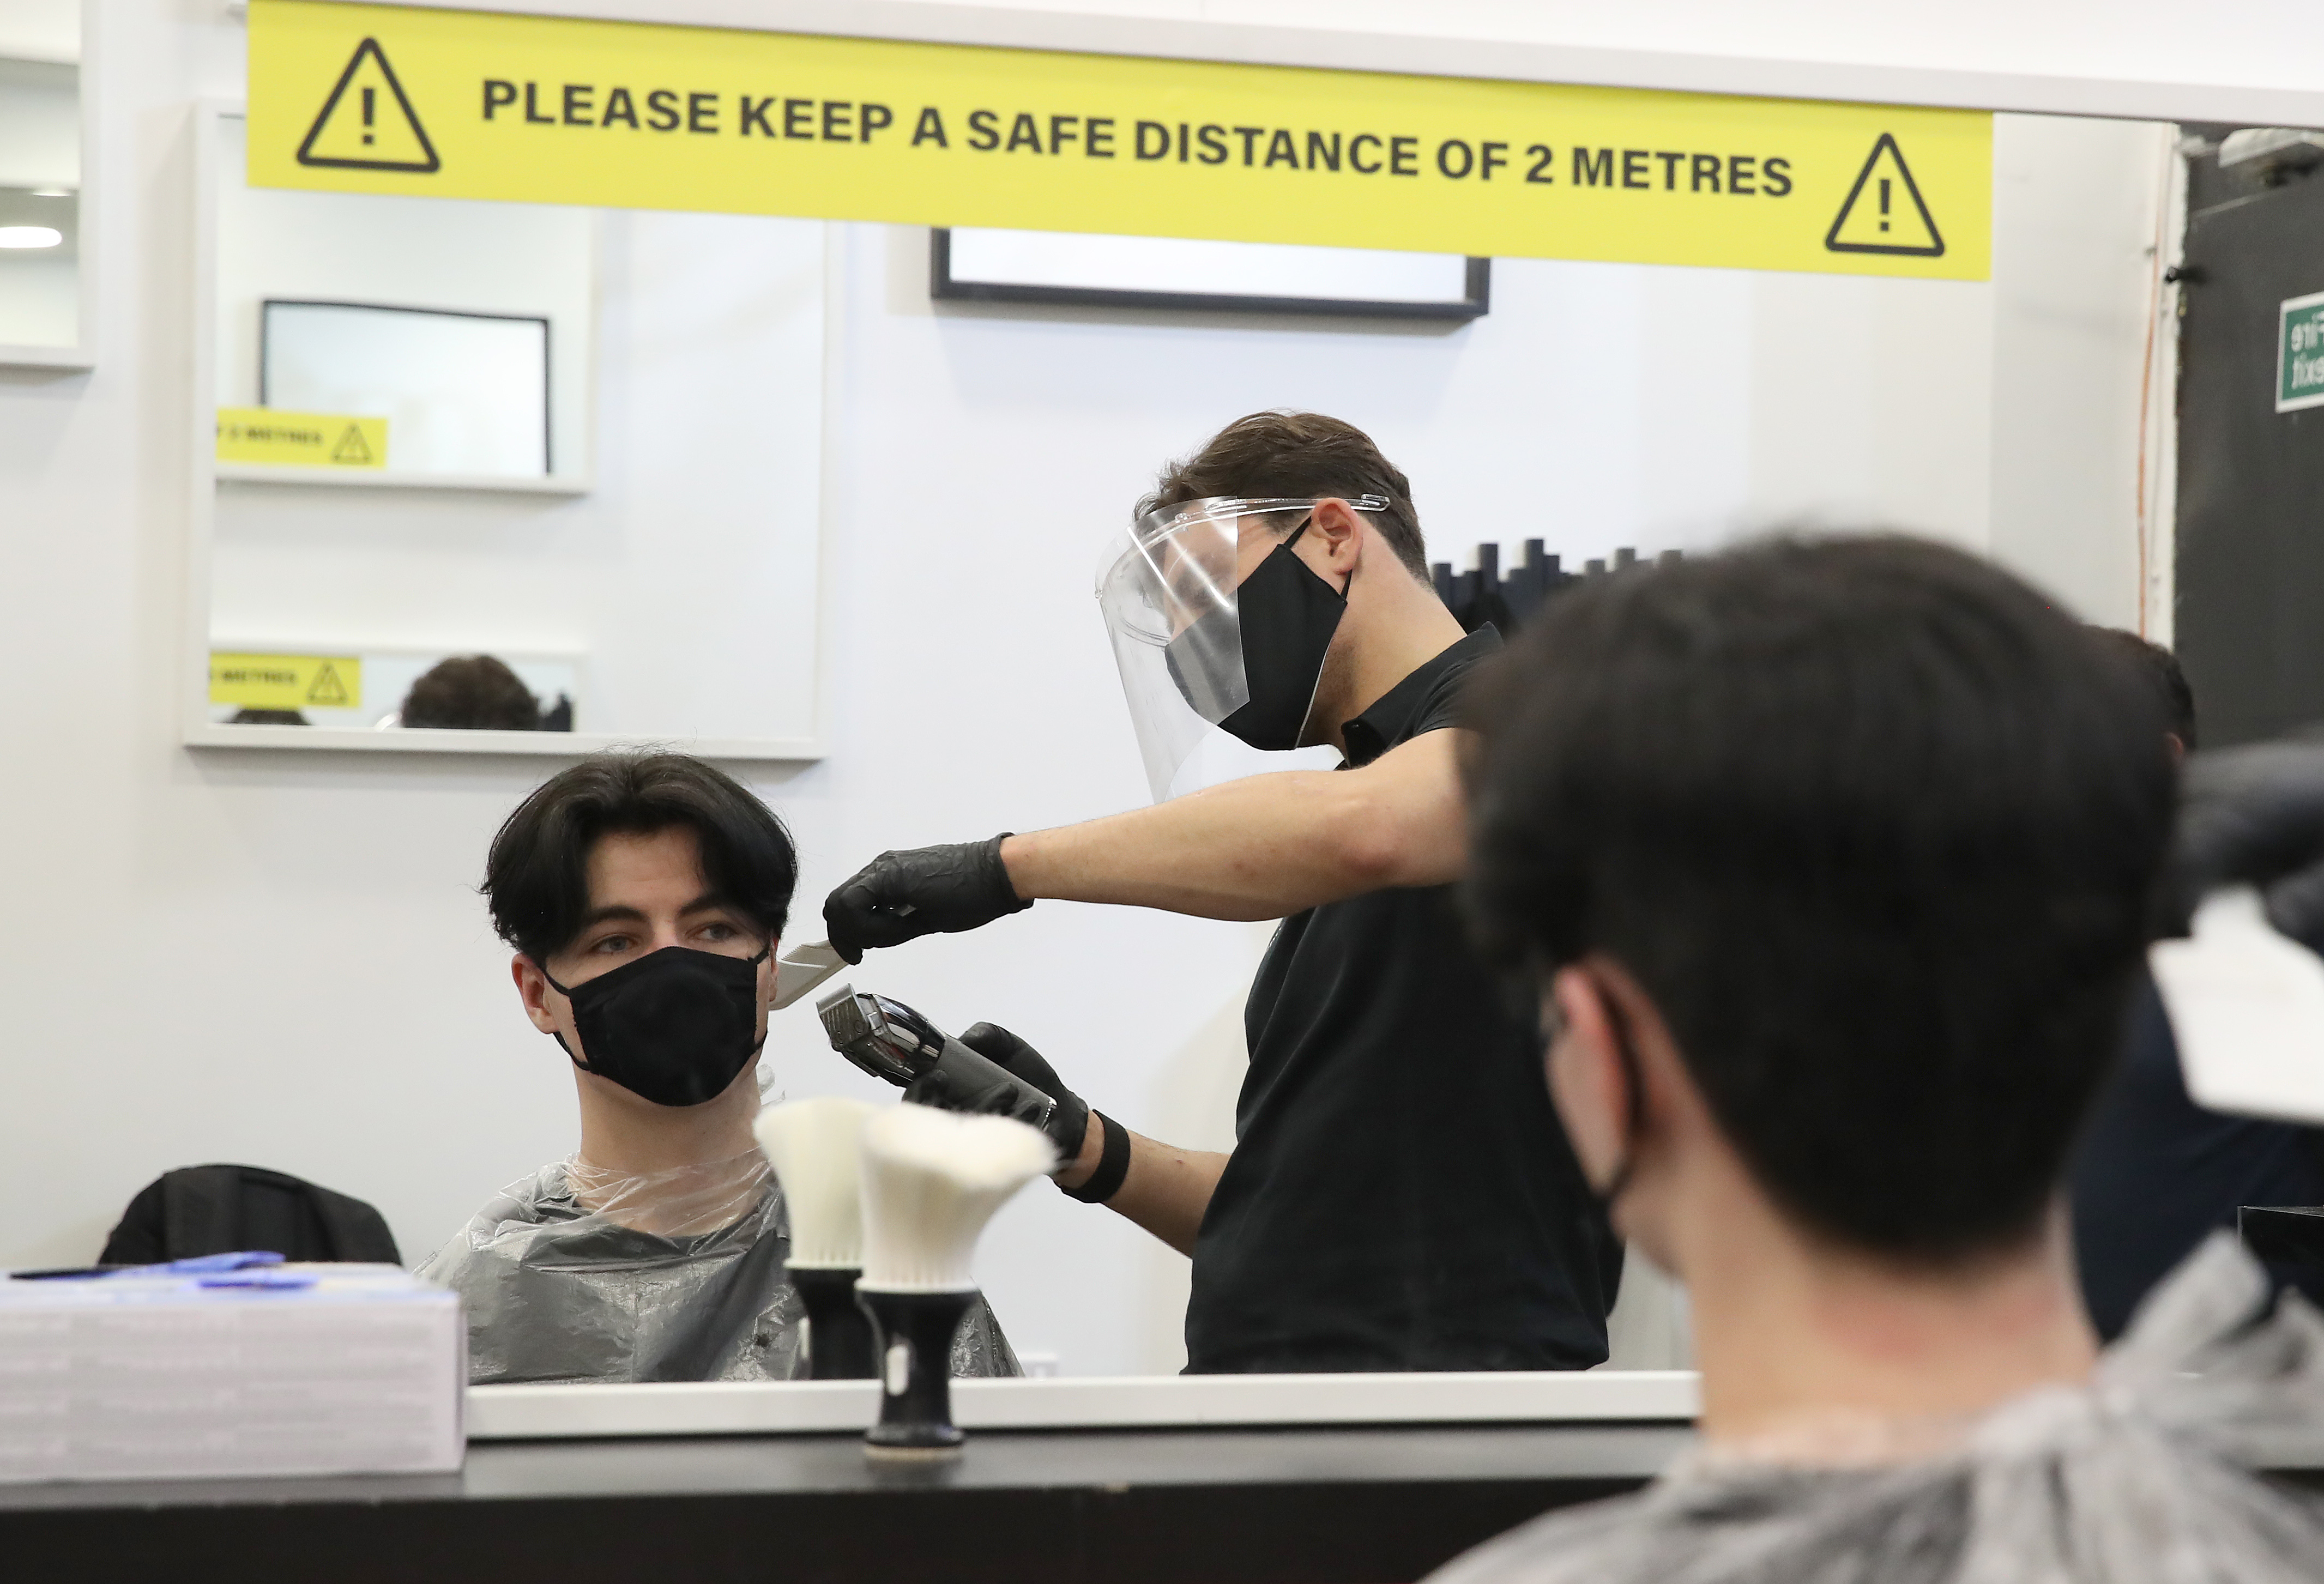 Barber Tony Mann with customer Sean Munro in the chair at Tony Mann's Barber Shop in Giffnock, Glasgow which opened at midnight as lockdown restrictions are relaxed. (Photo by Andrew Milligan/PA Images via Getty Images)